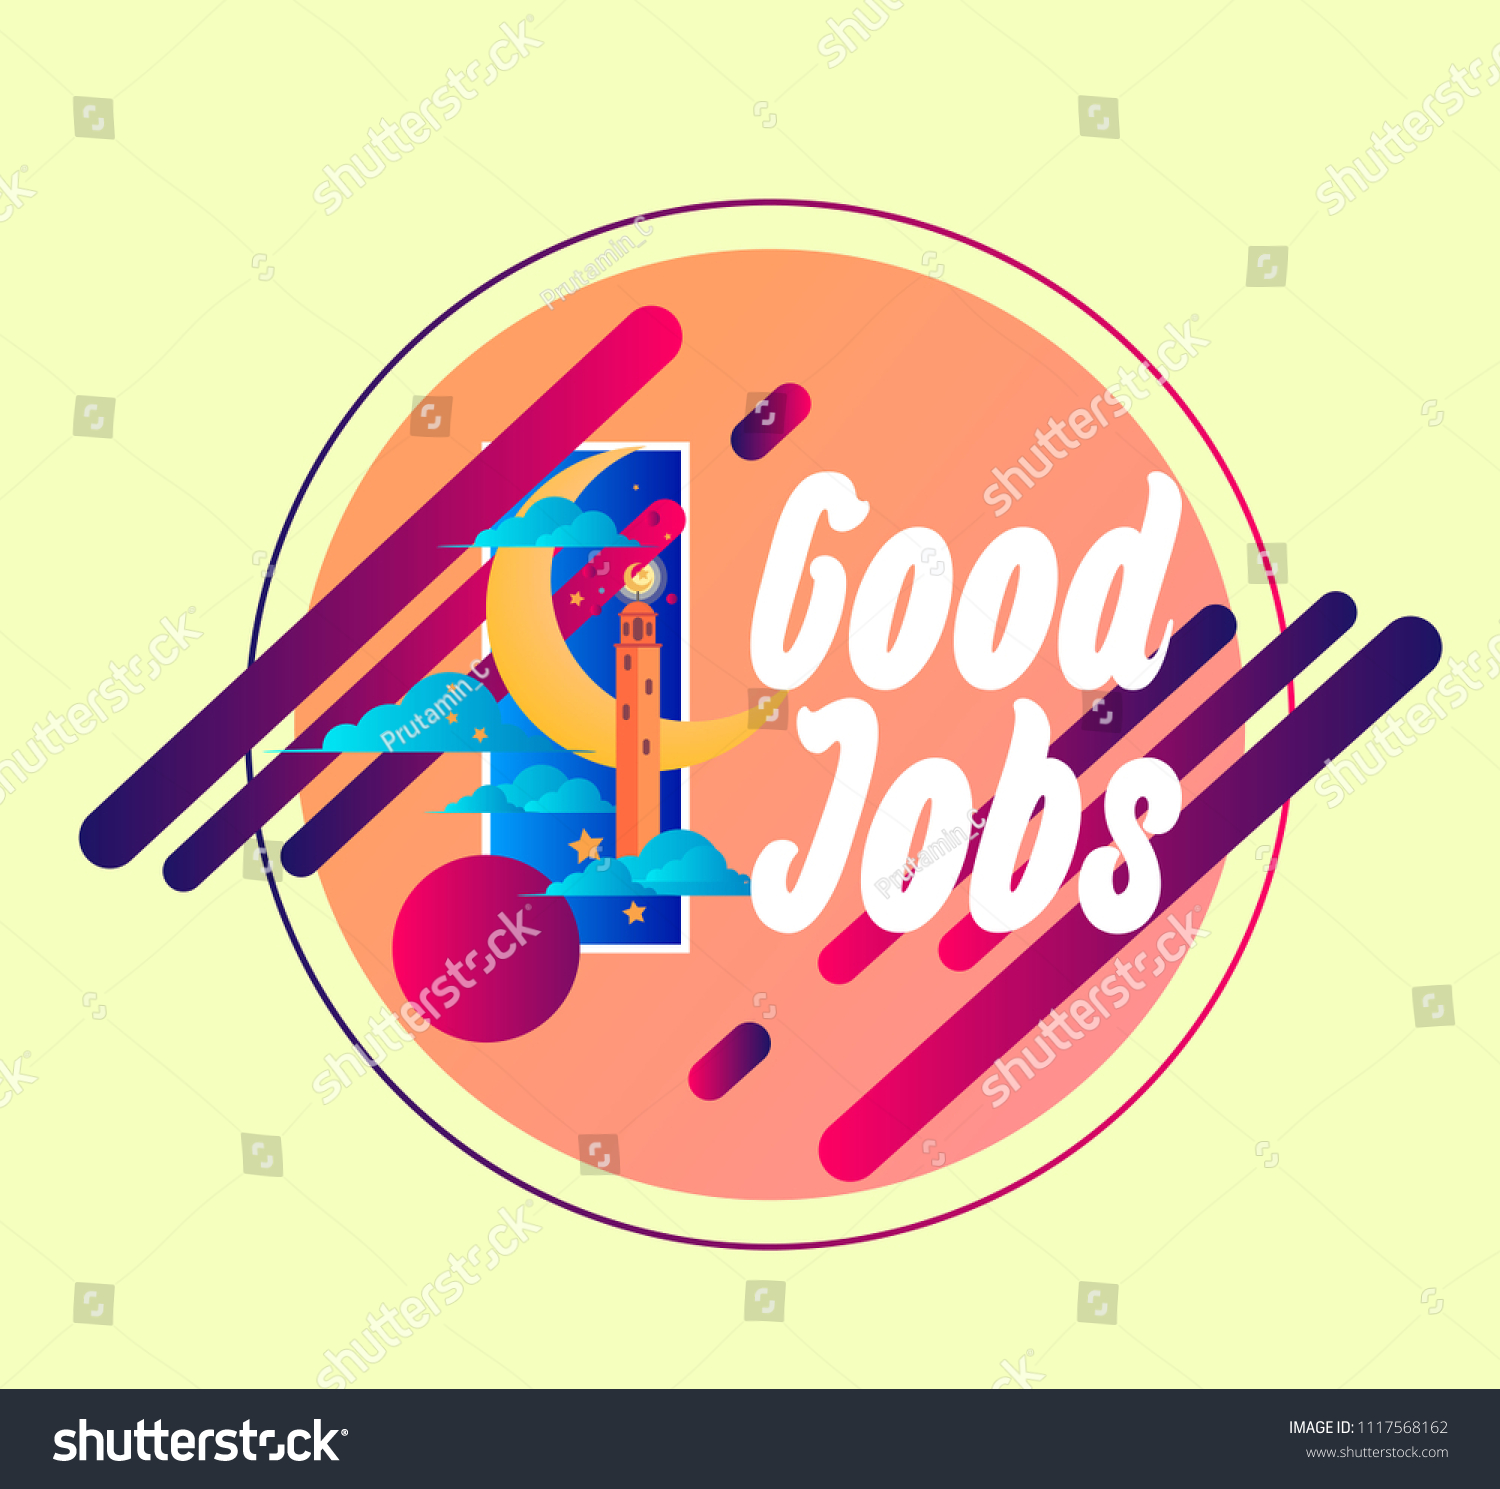 Good jobs vector beautiful greeting card stock vector 1117568162 good jobs vector beautiful greeting card or label with crescent moon theme m4hsunfo